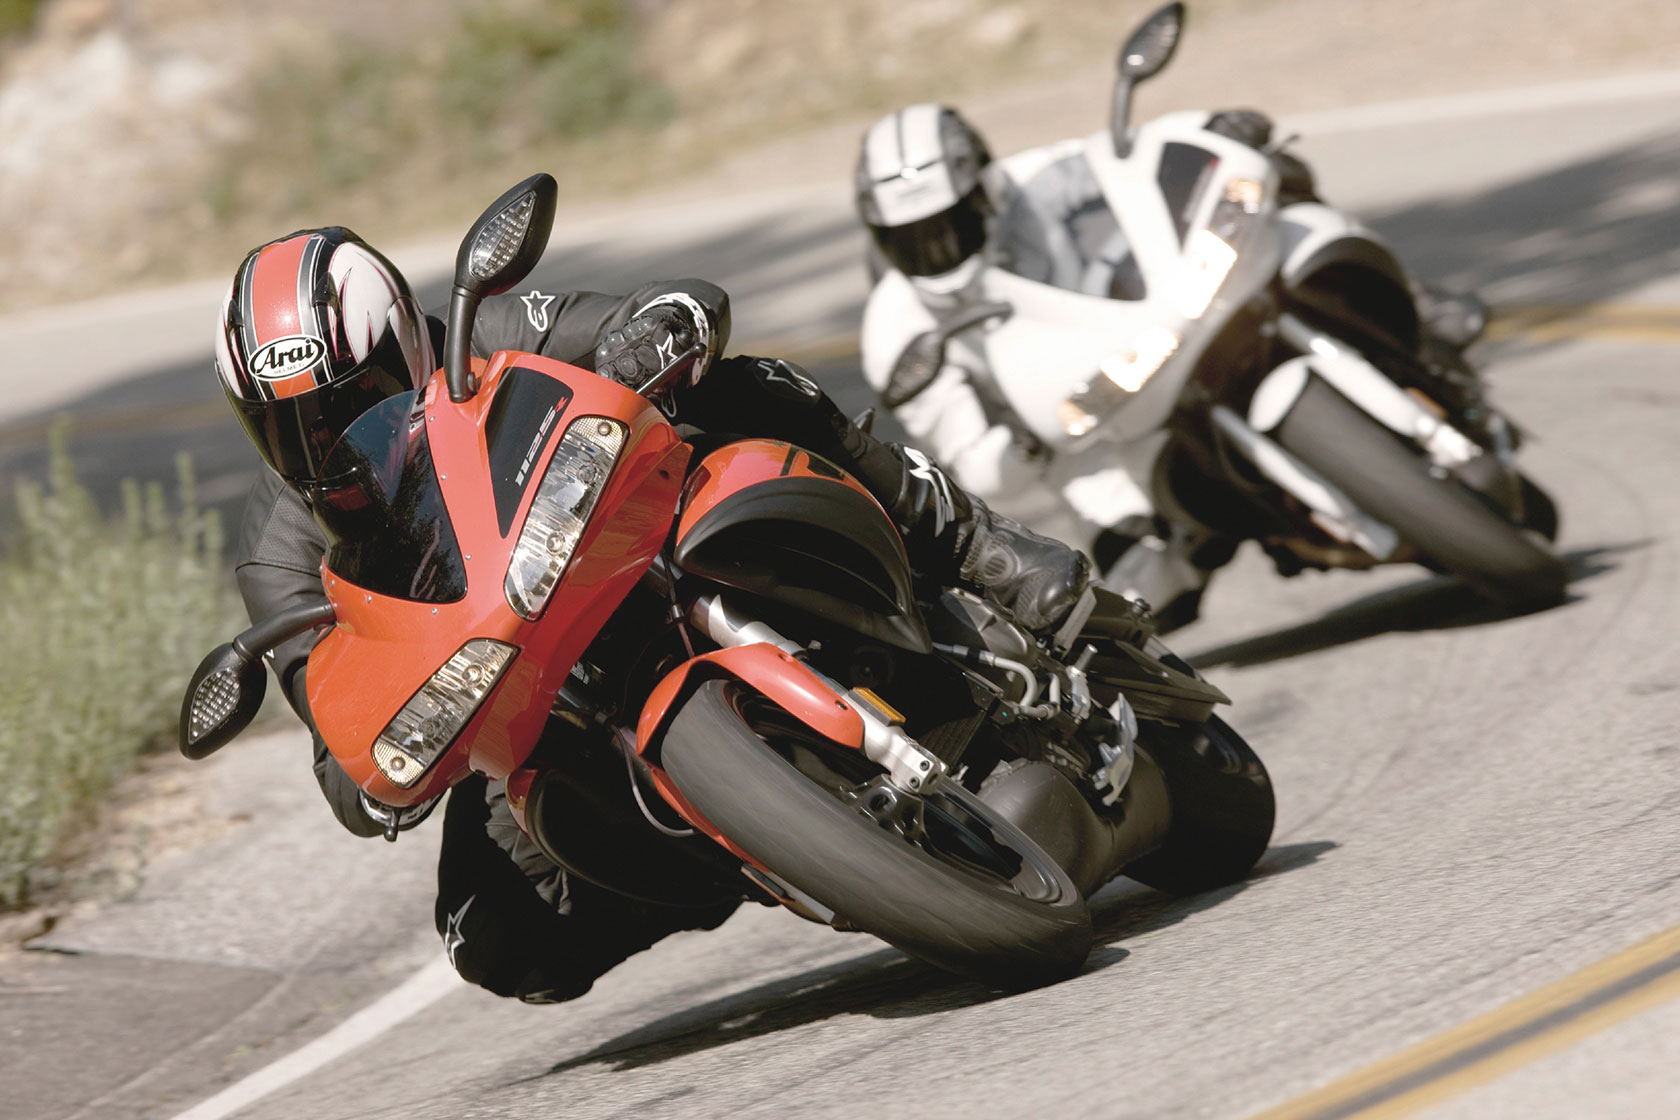 Buell 1125 R 2010 images #66451